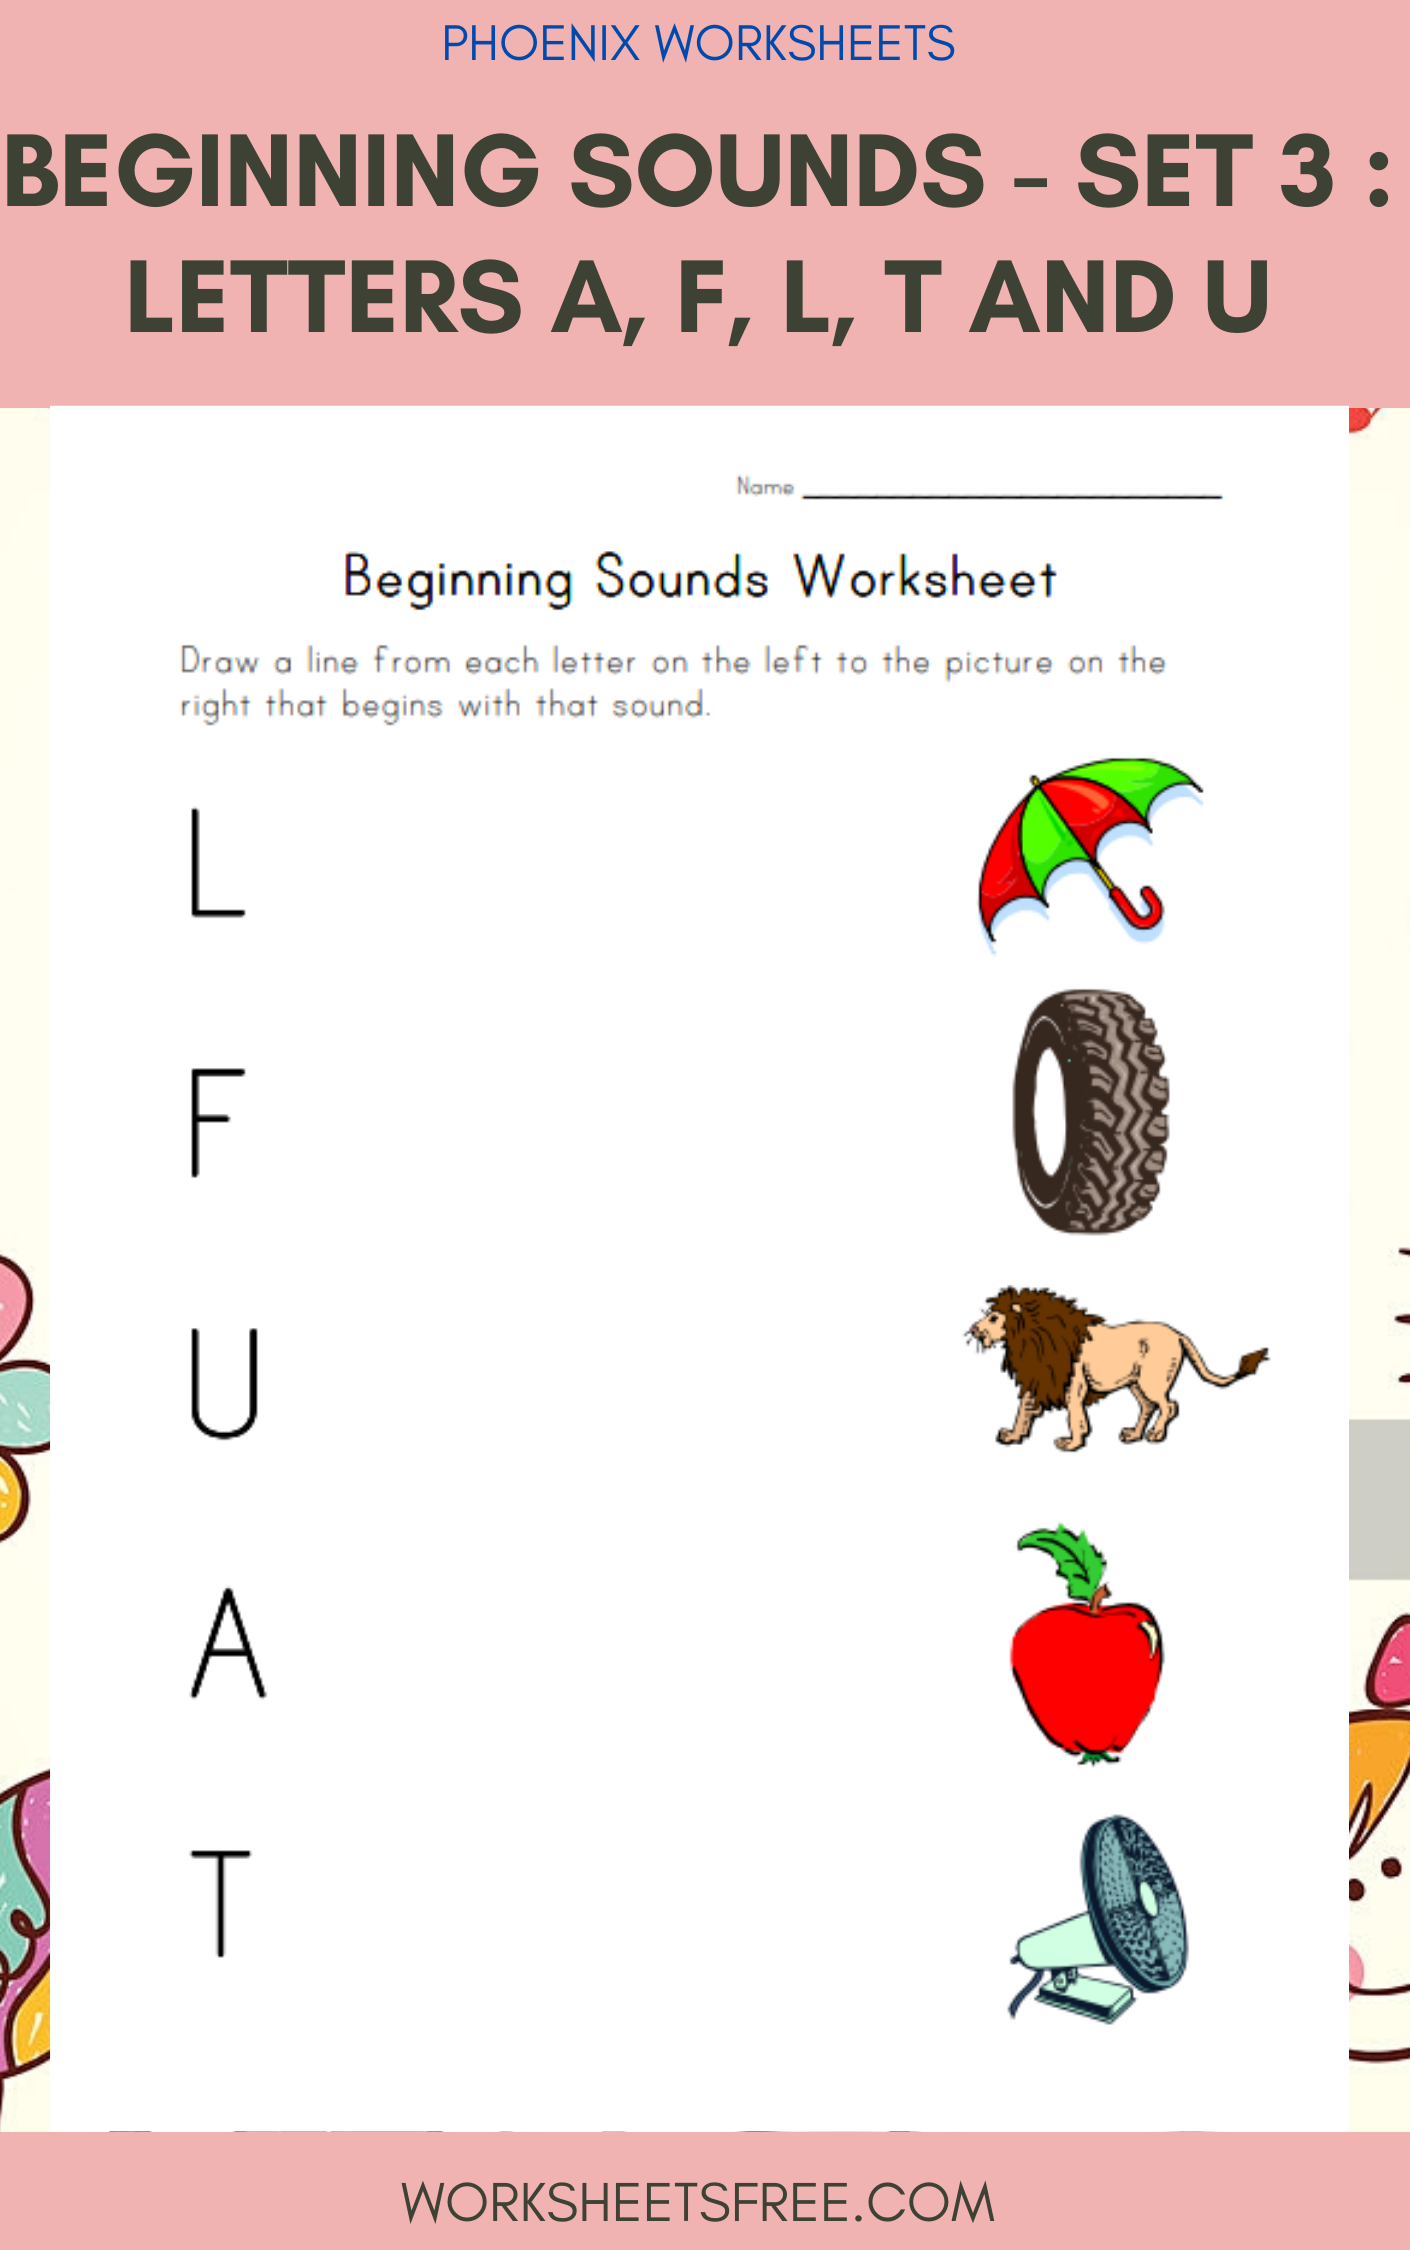 7 Beginning Sounds Worksheets In